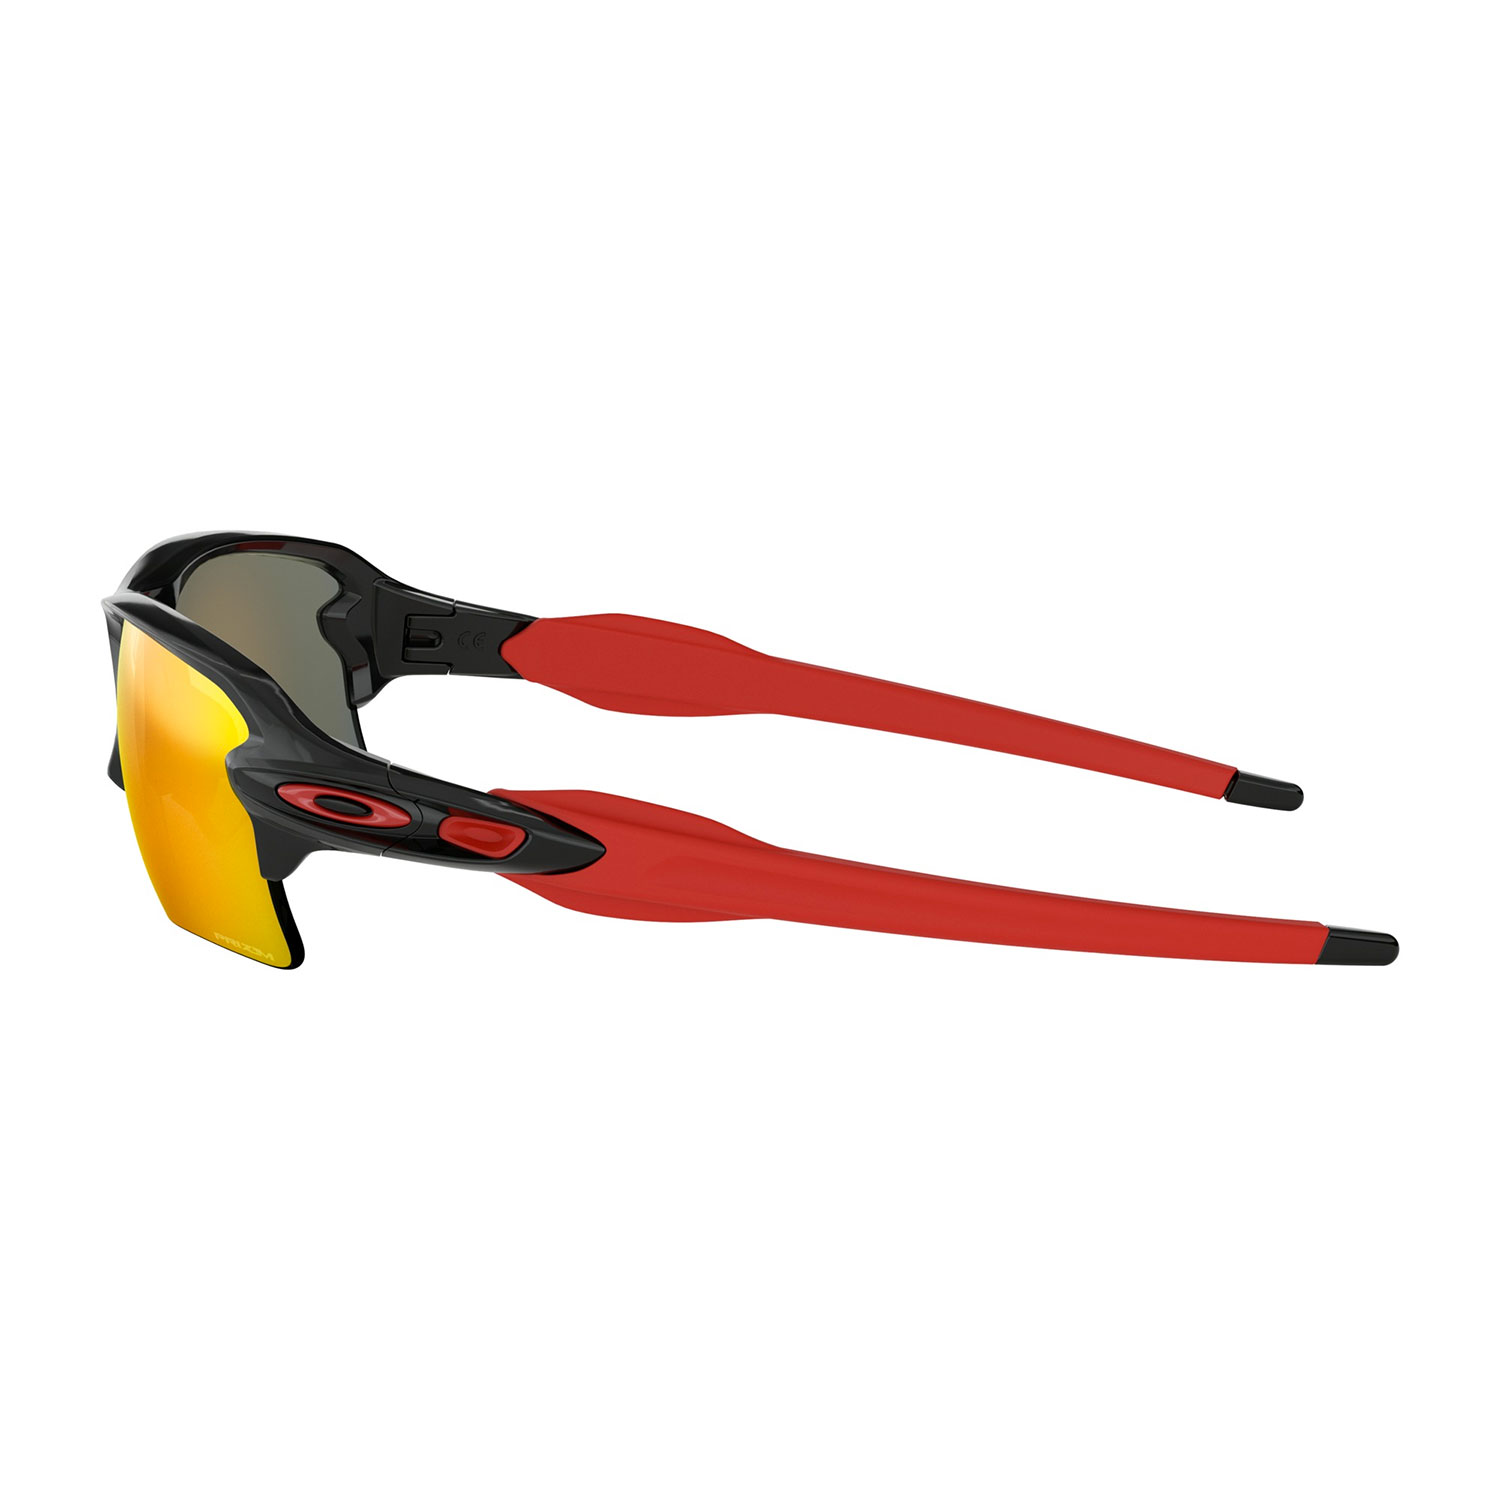 Oakley Flak 2.0 XL Glasses - Polished Black/Prizm Ruby